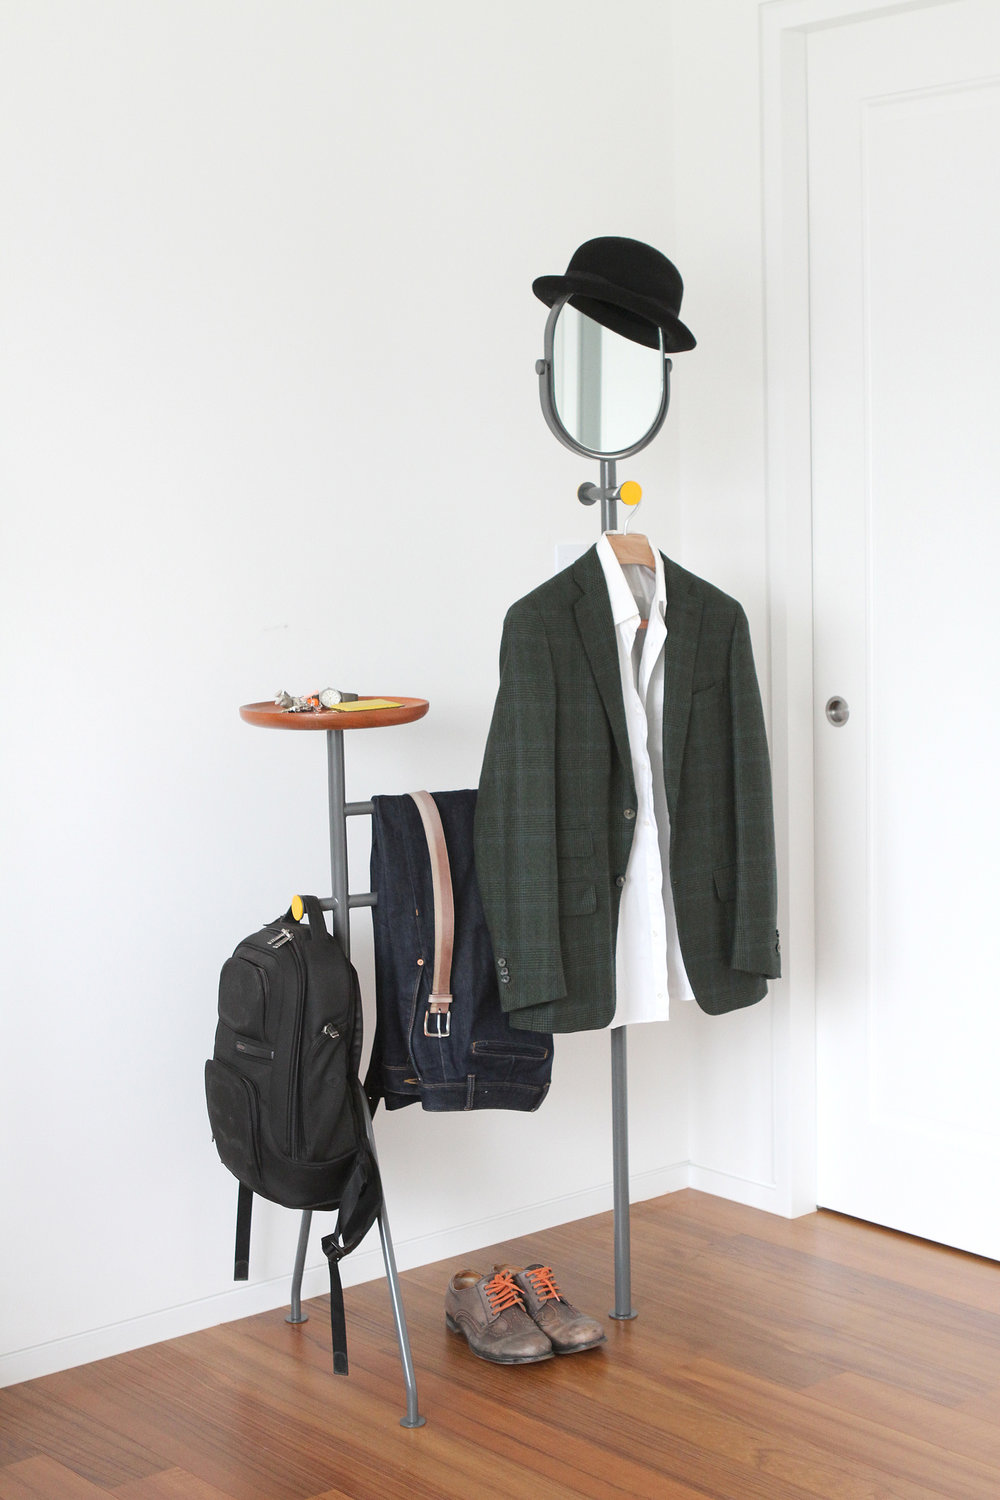 Butler  | This is a modernised valet stand using minimal amount of materials. Butler can be used front and back depending on the user's preference as there is no right side. The legs are designed to be adjustable for uneven floors.